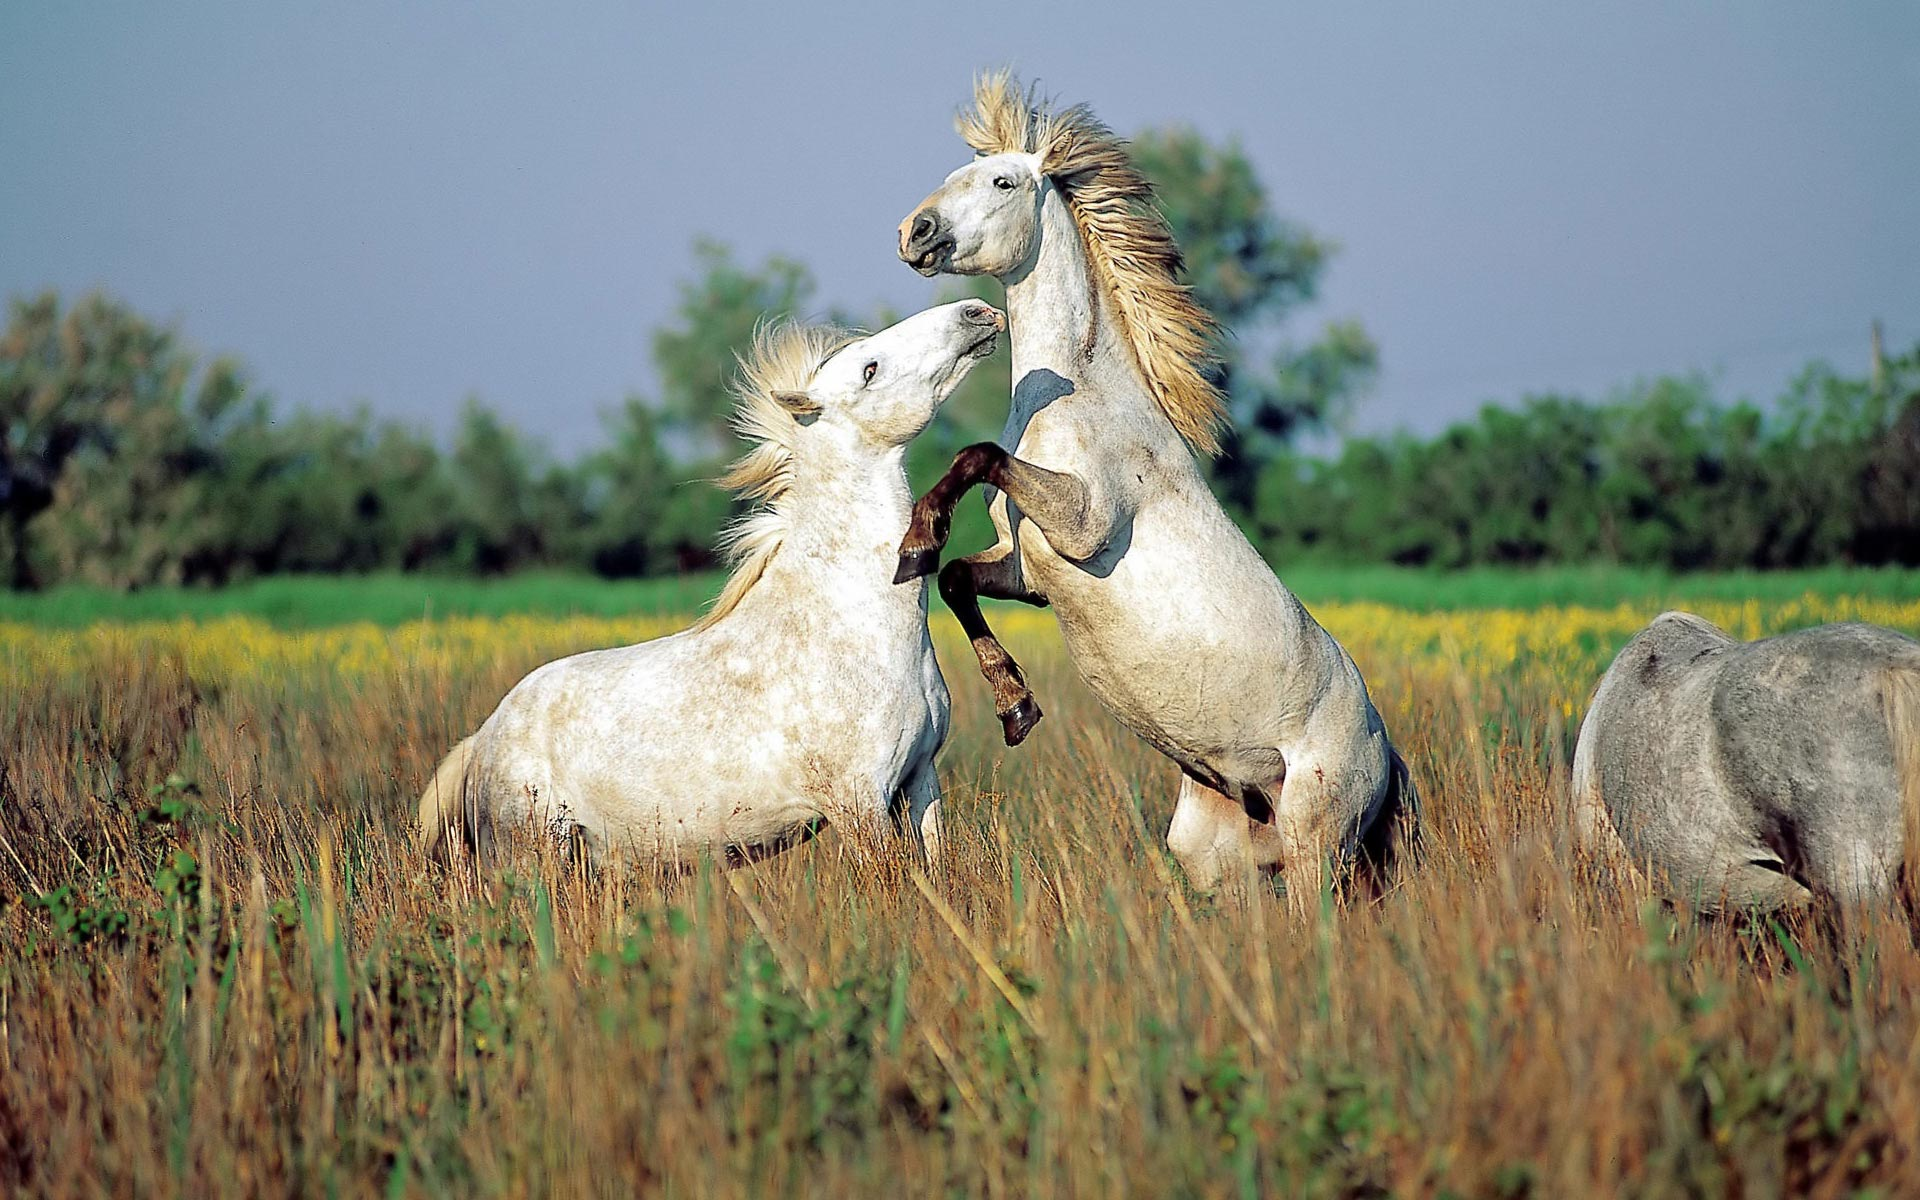 awesome animals fanpop animal wild wildlife backgrounds wallpapers horses bing hd nature horse wonderful